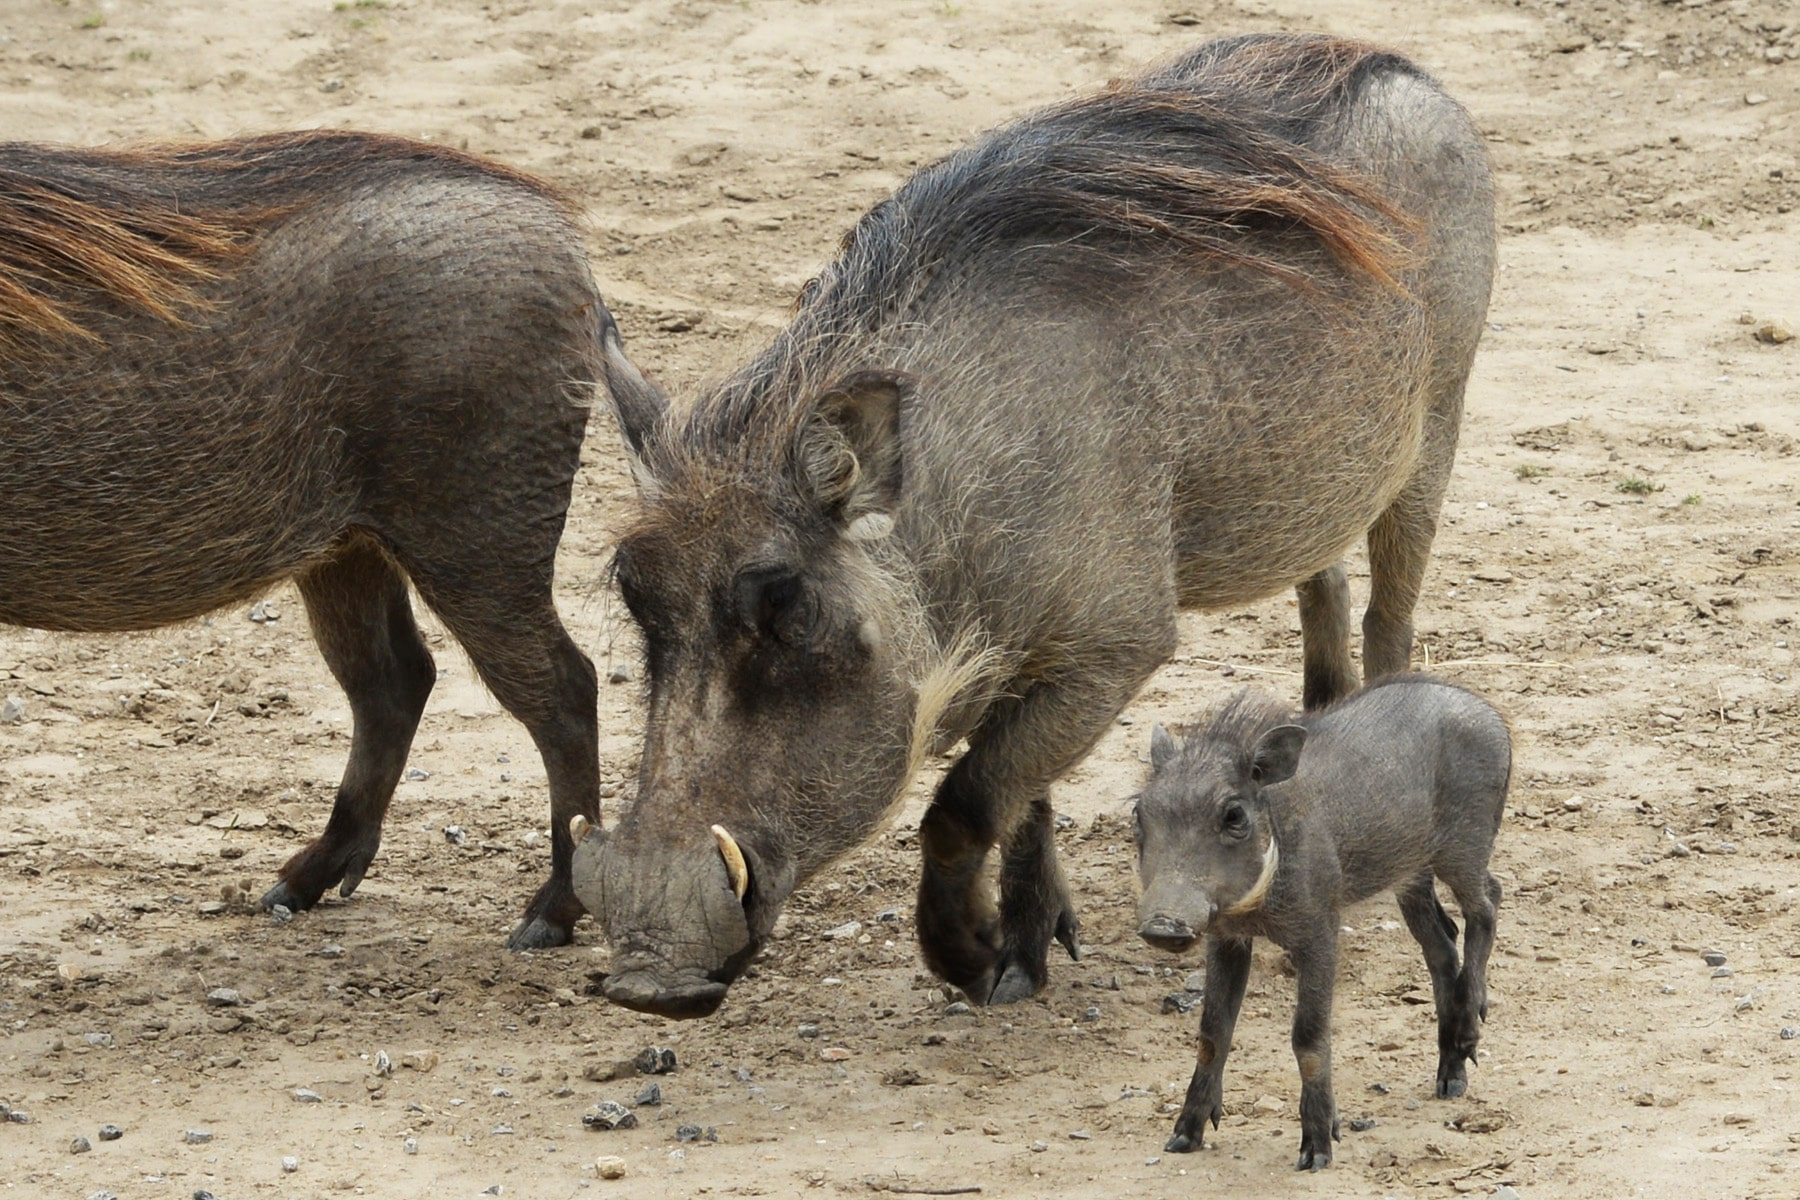 Common Warthog born at the Réserve Africaine de Sigean